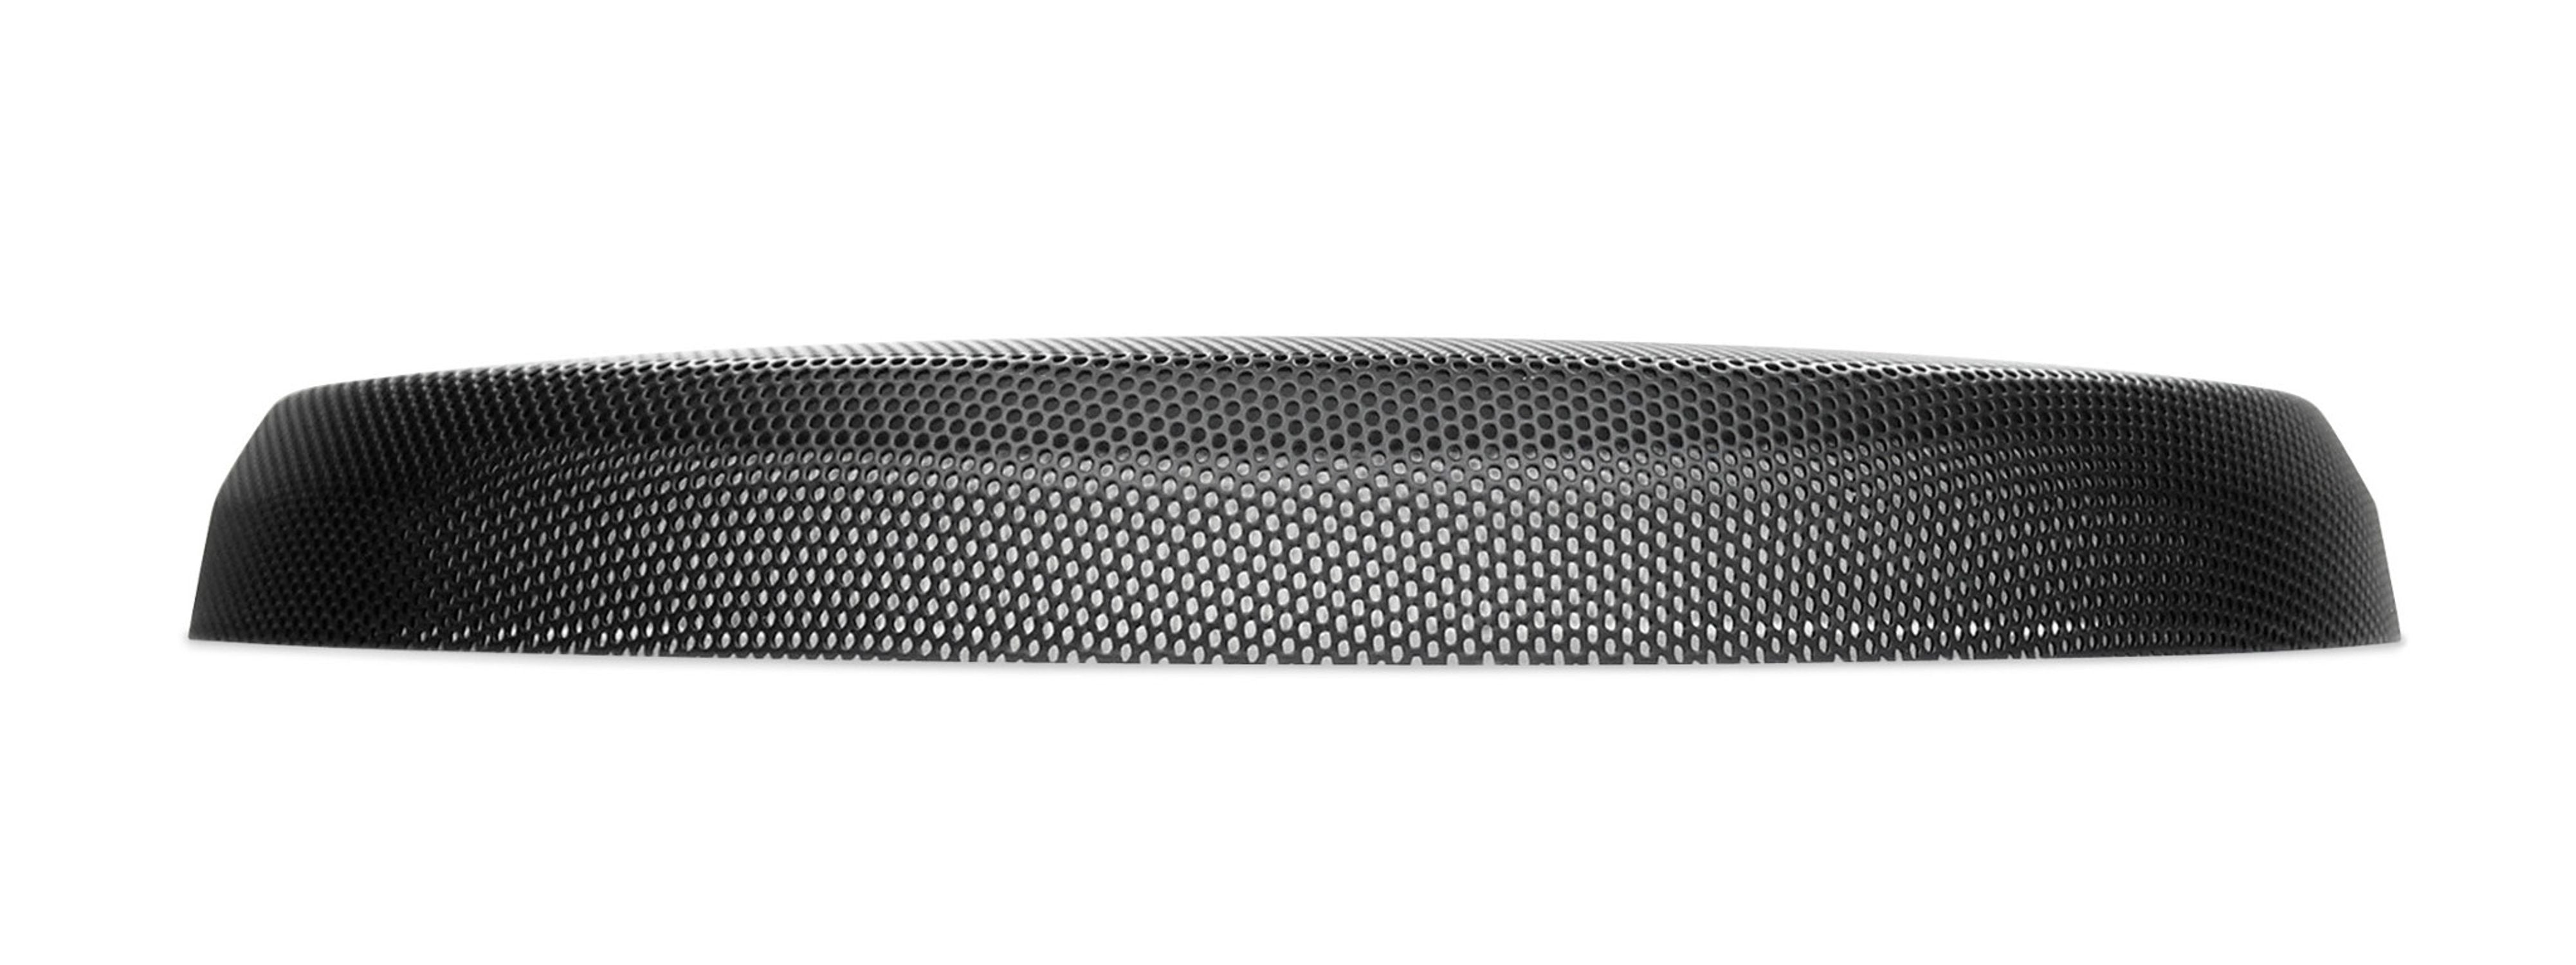 Profile of SGR Speaker Grille